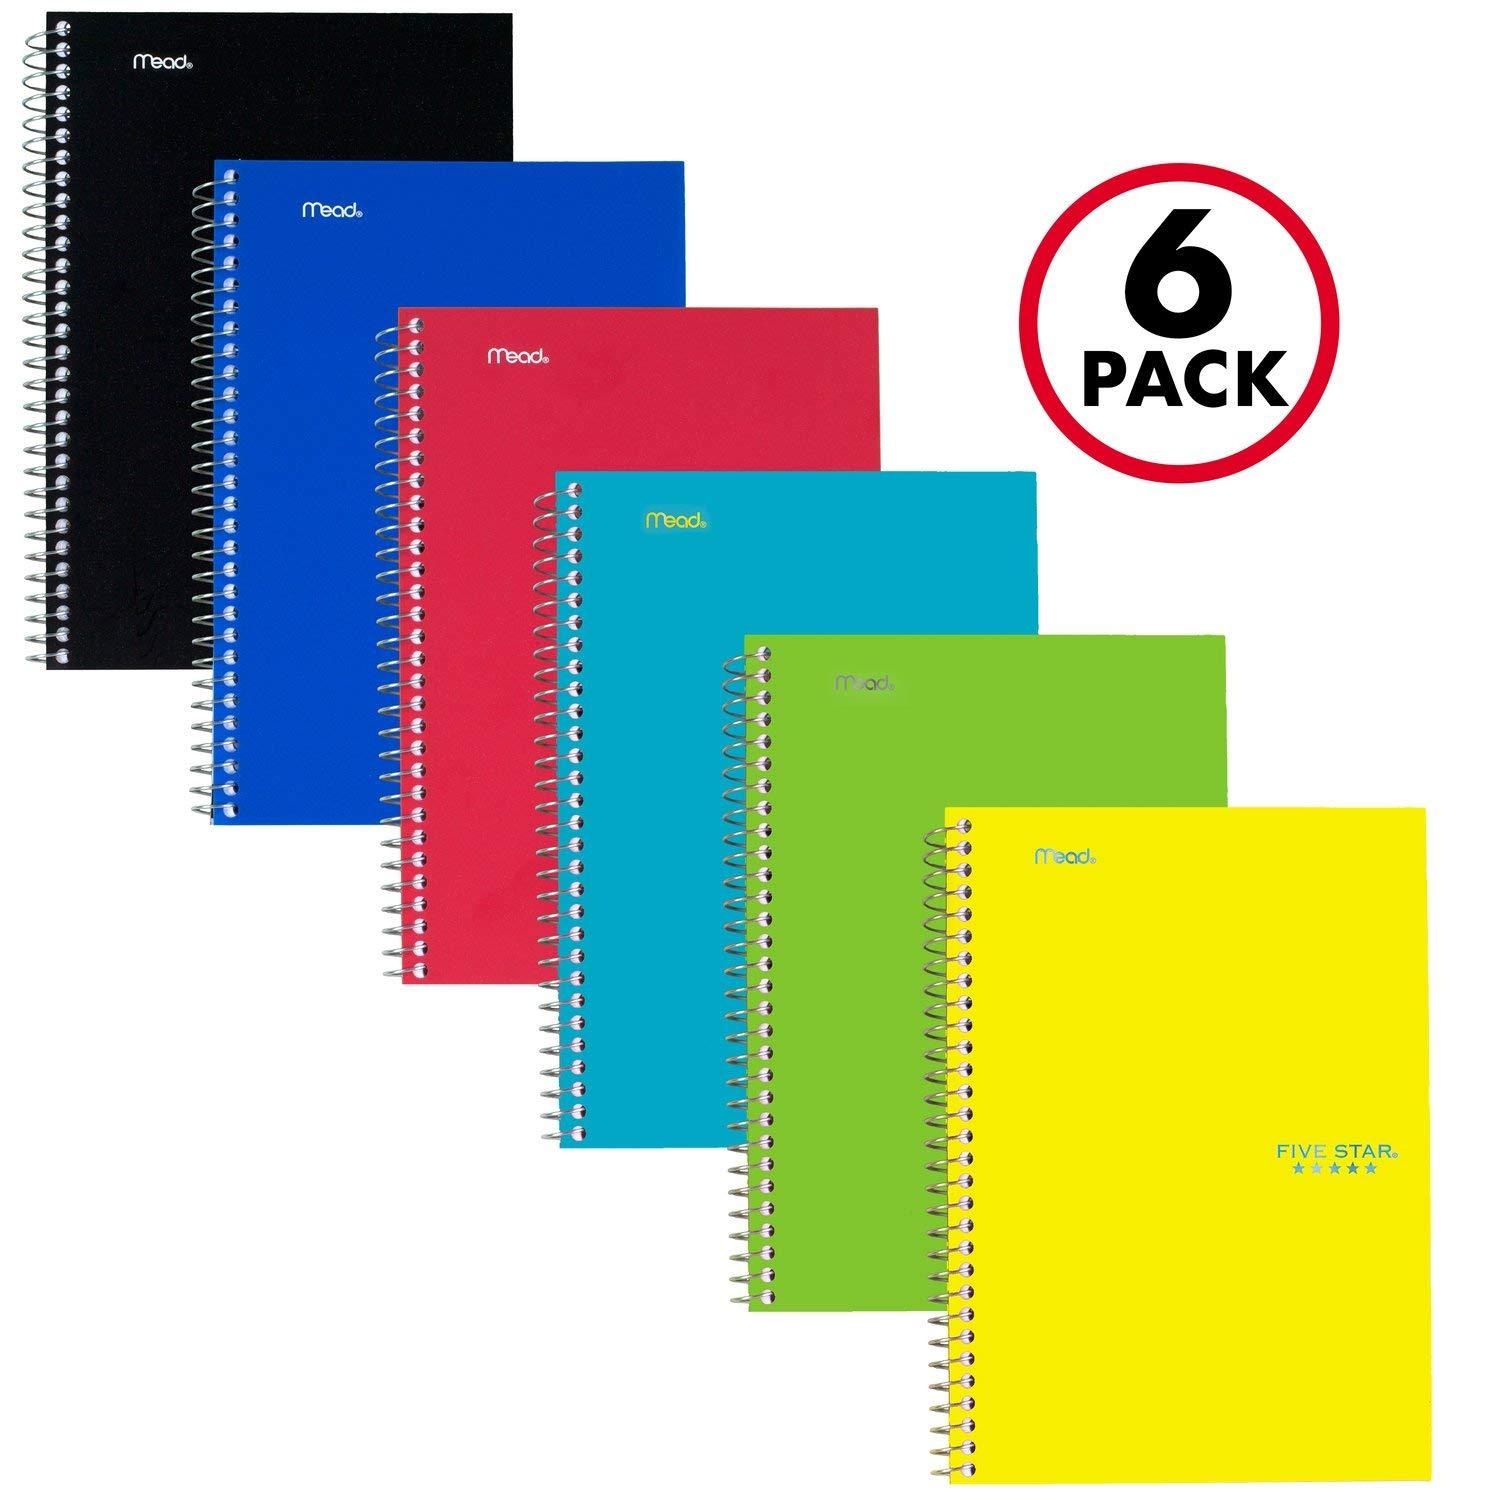 Five Star Spiral Notebooks, 2 Subject, College Ruled Paper, 100 Sheets, 9-1/2'' x 6'', Assorted Colors, 6 Pack (73711)